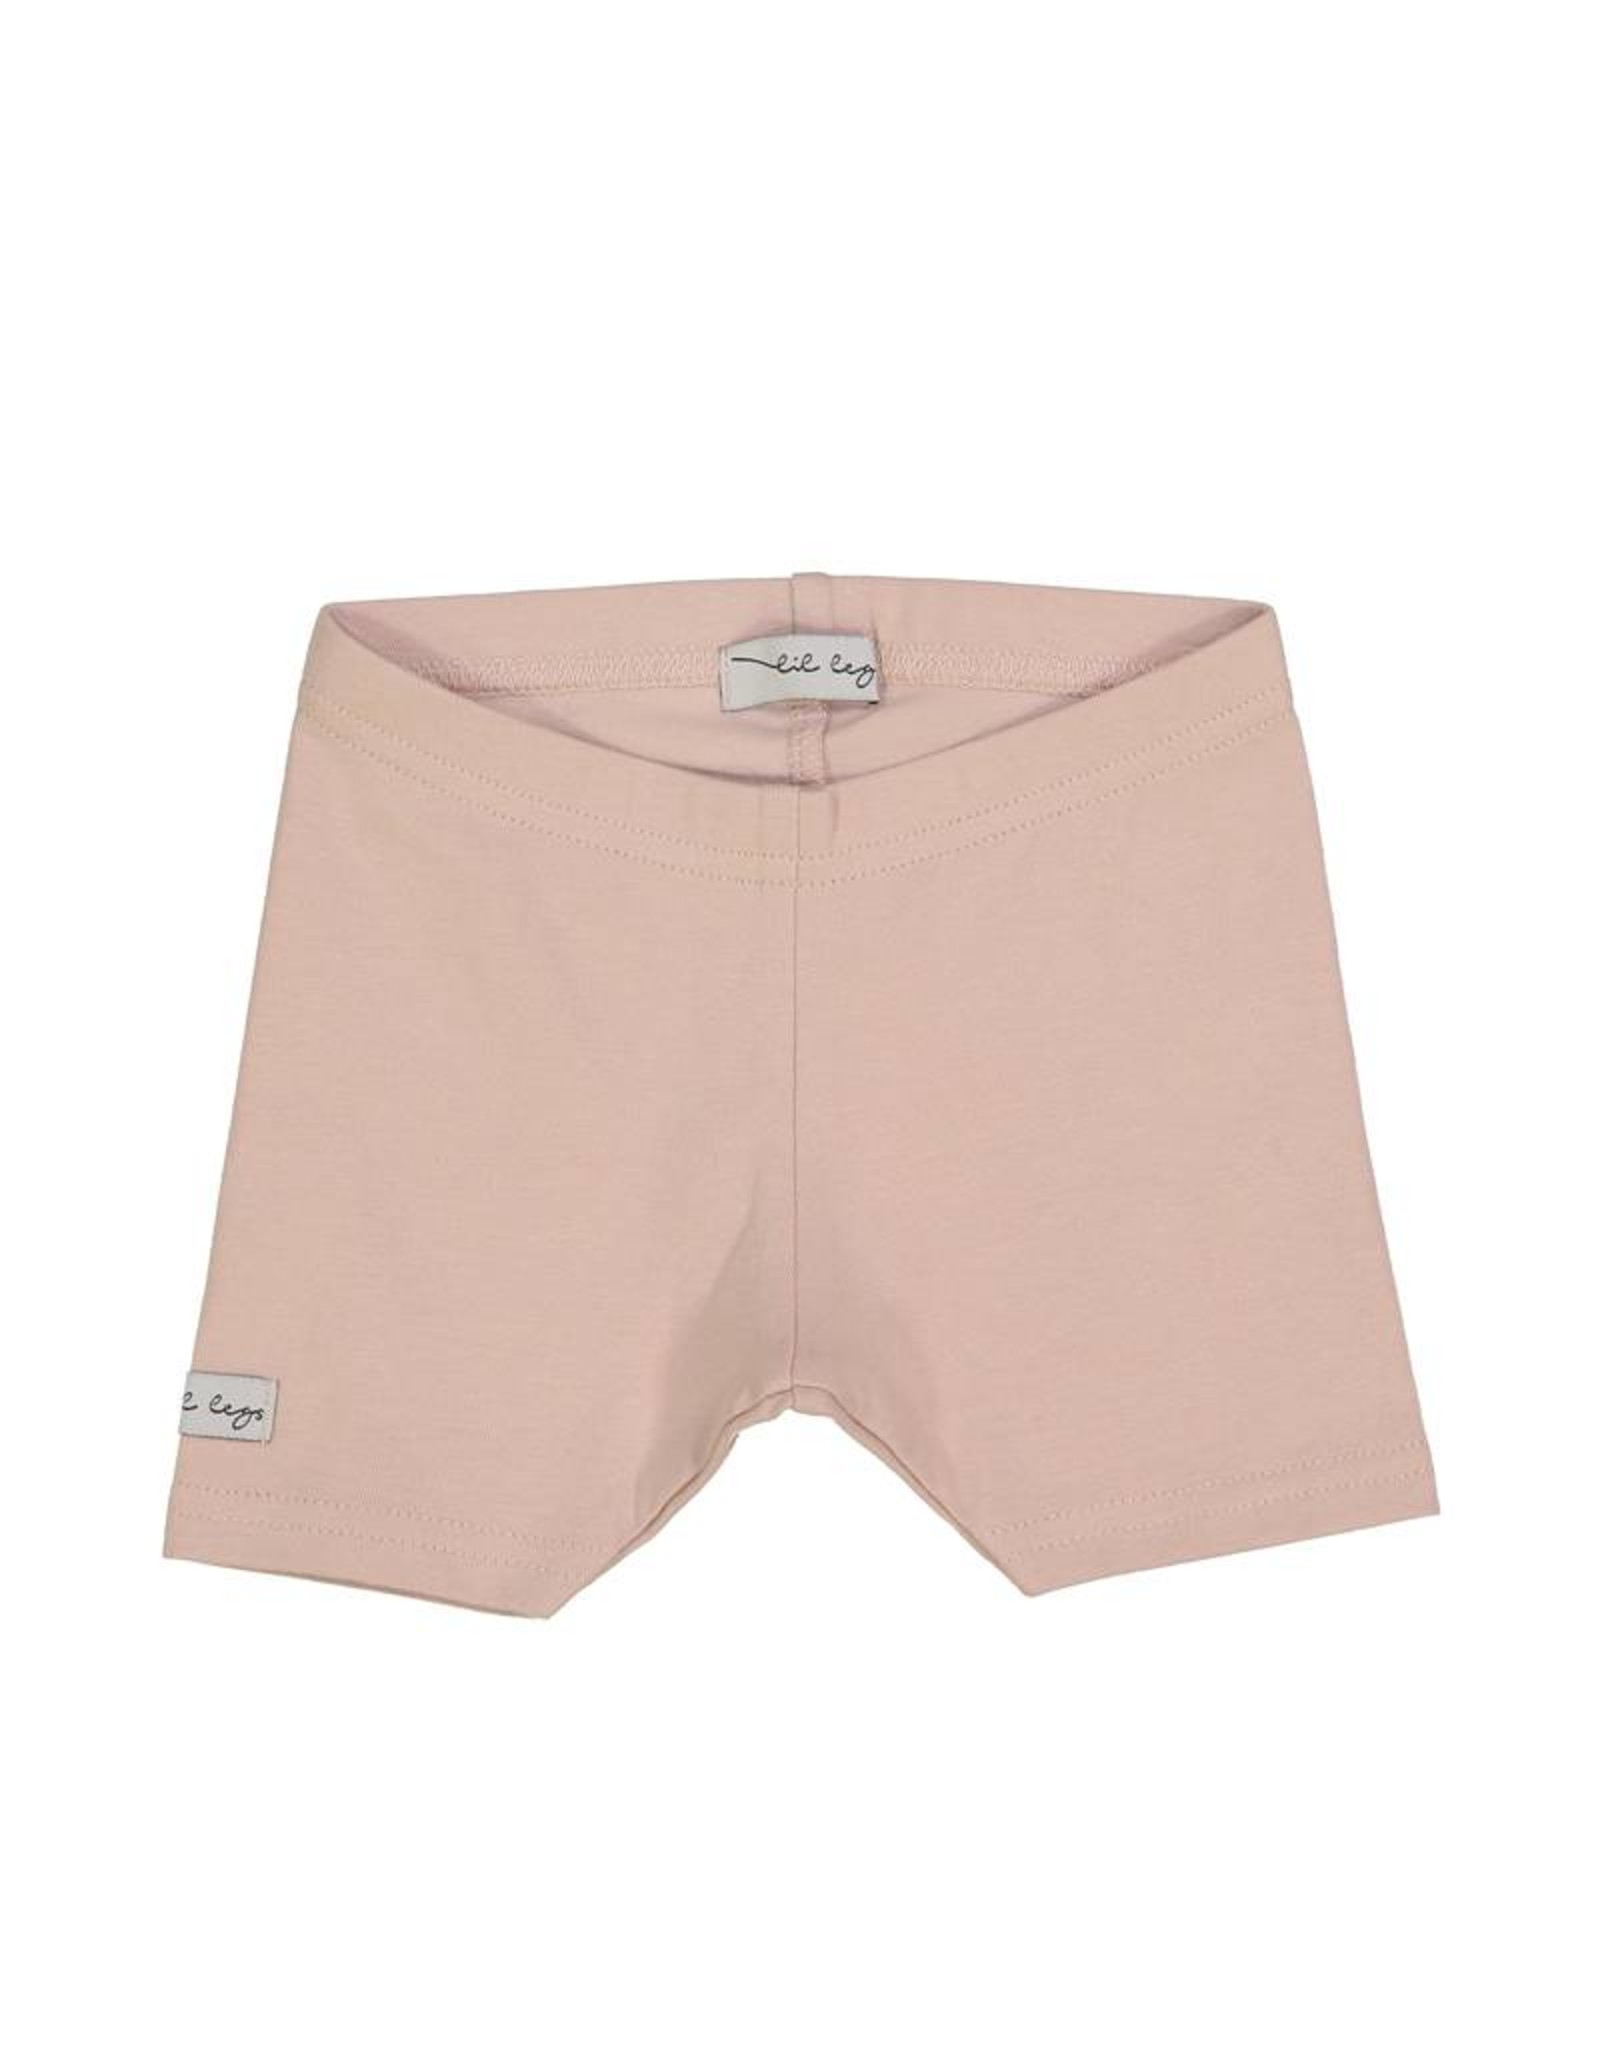 LIL LEGS Spring/Summer Cotton Shorts Fashion Colors